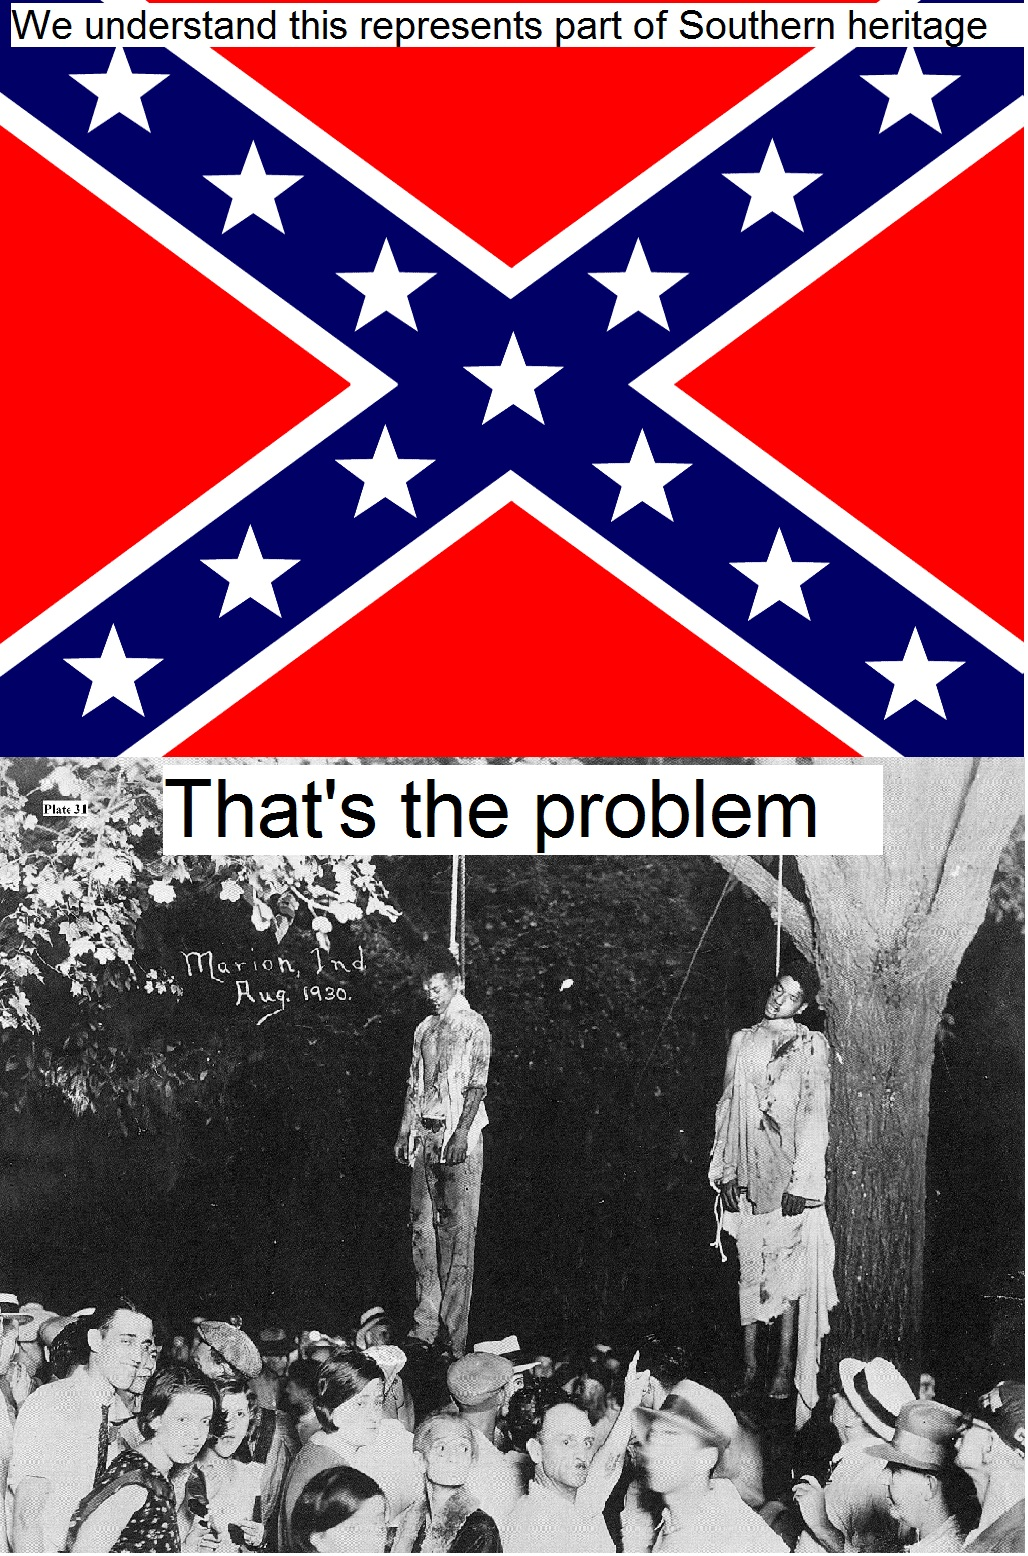 the darktechobserver blog yes the confederate flag is a symbol of